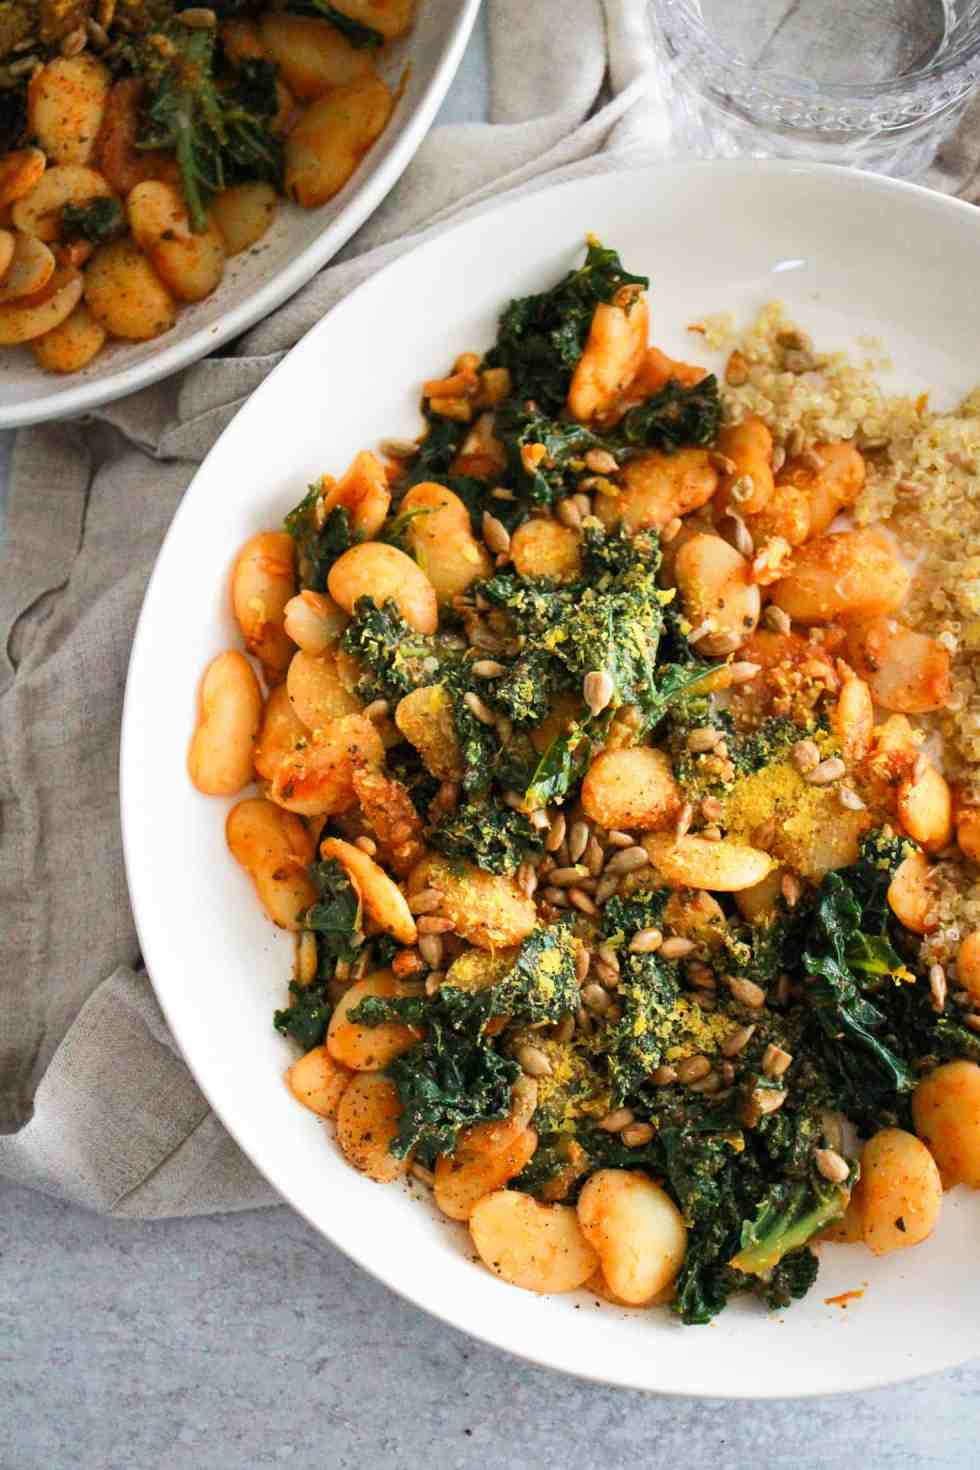 Beans and greens in white bowls are easy college meals